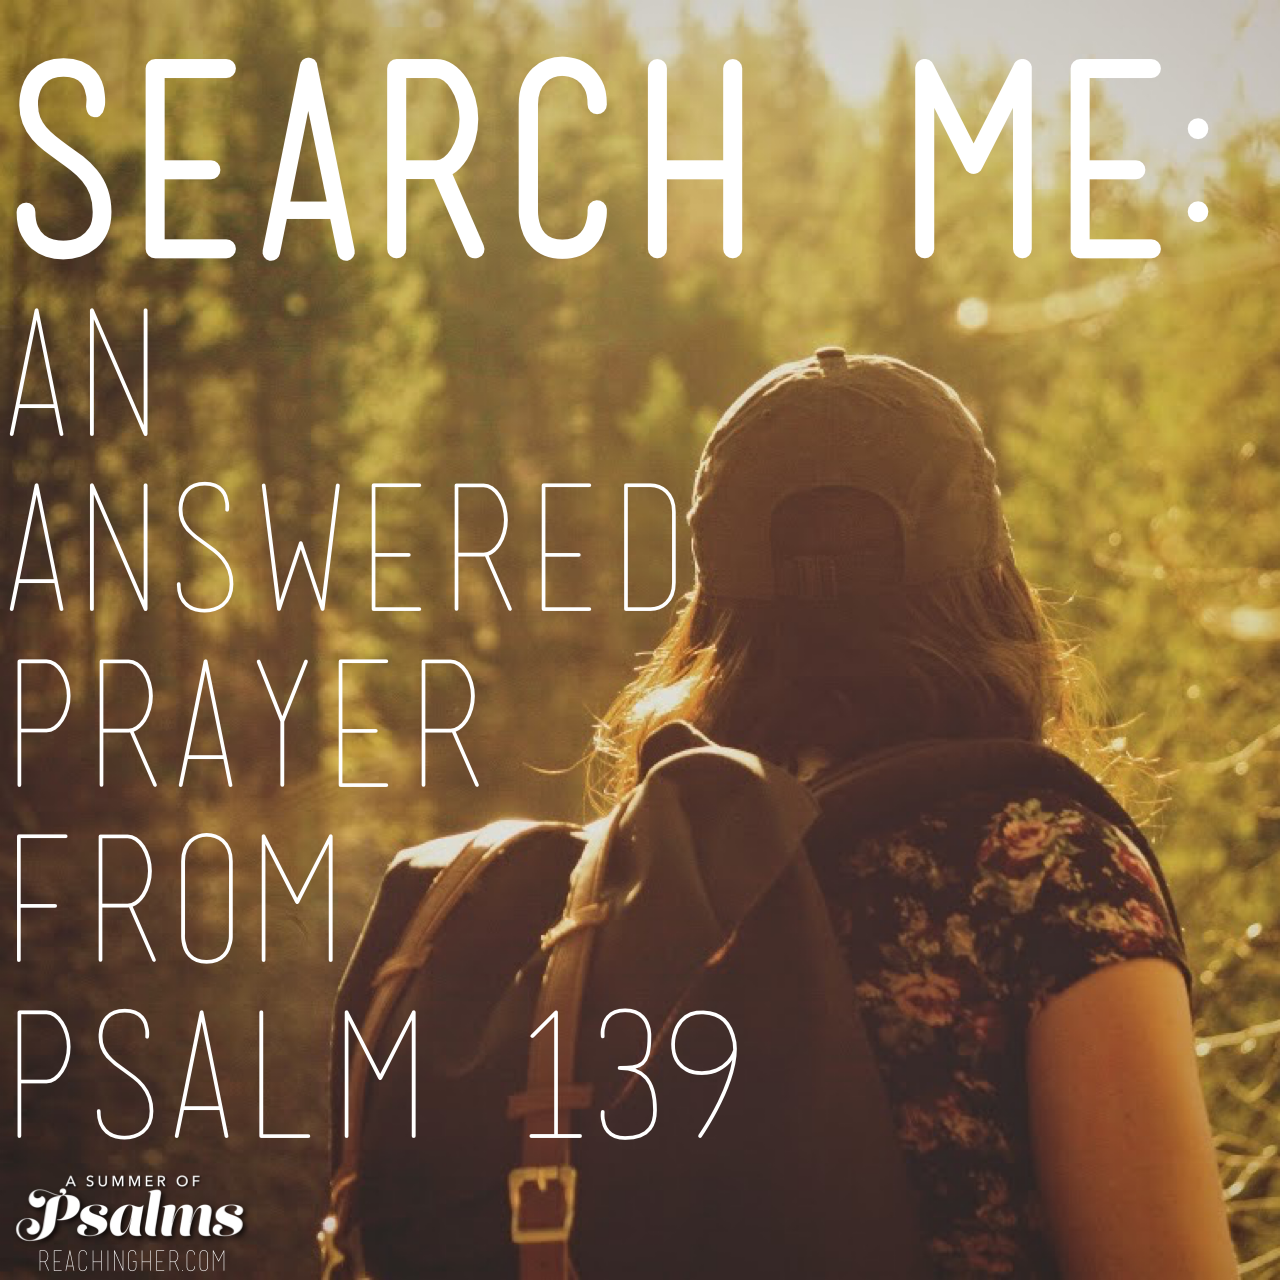 Search Me: An Answered Prayer From Psalm 139 — Reaching Her